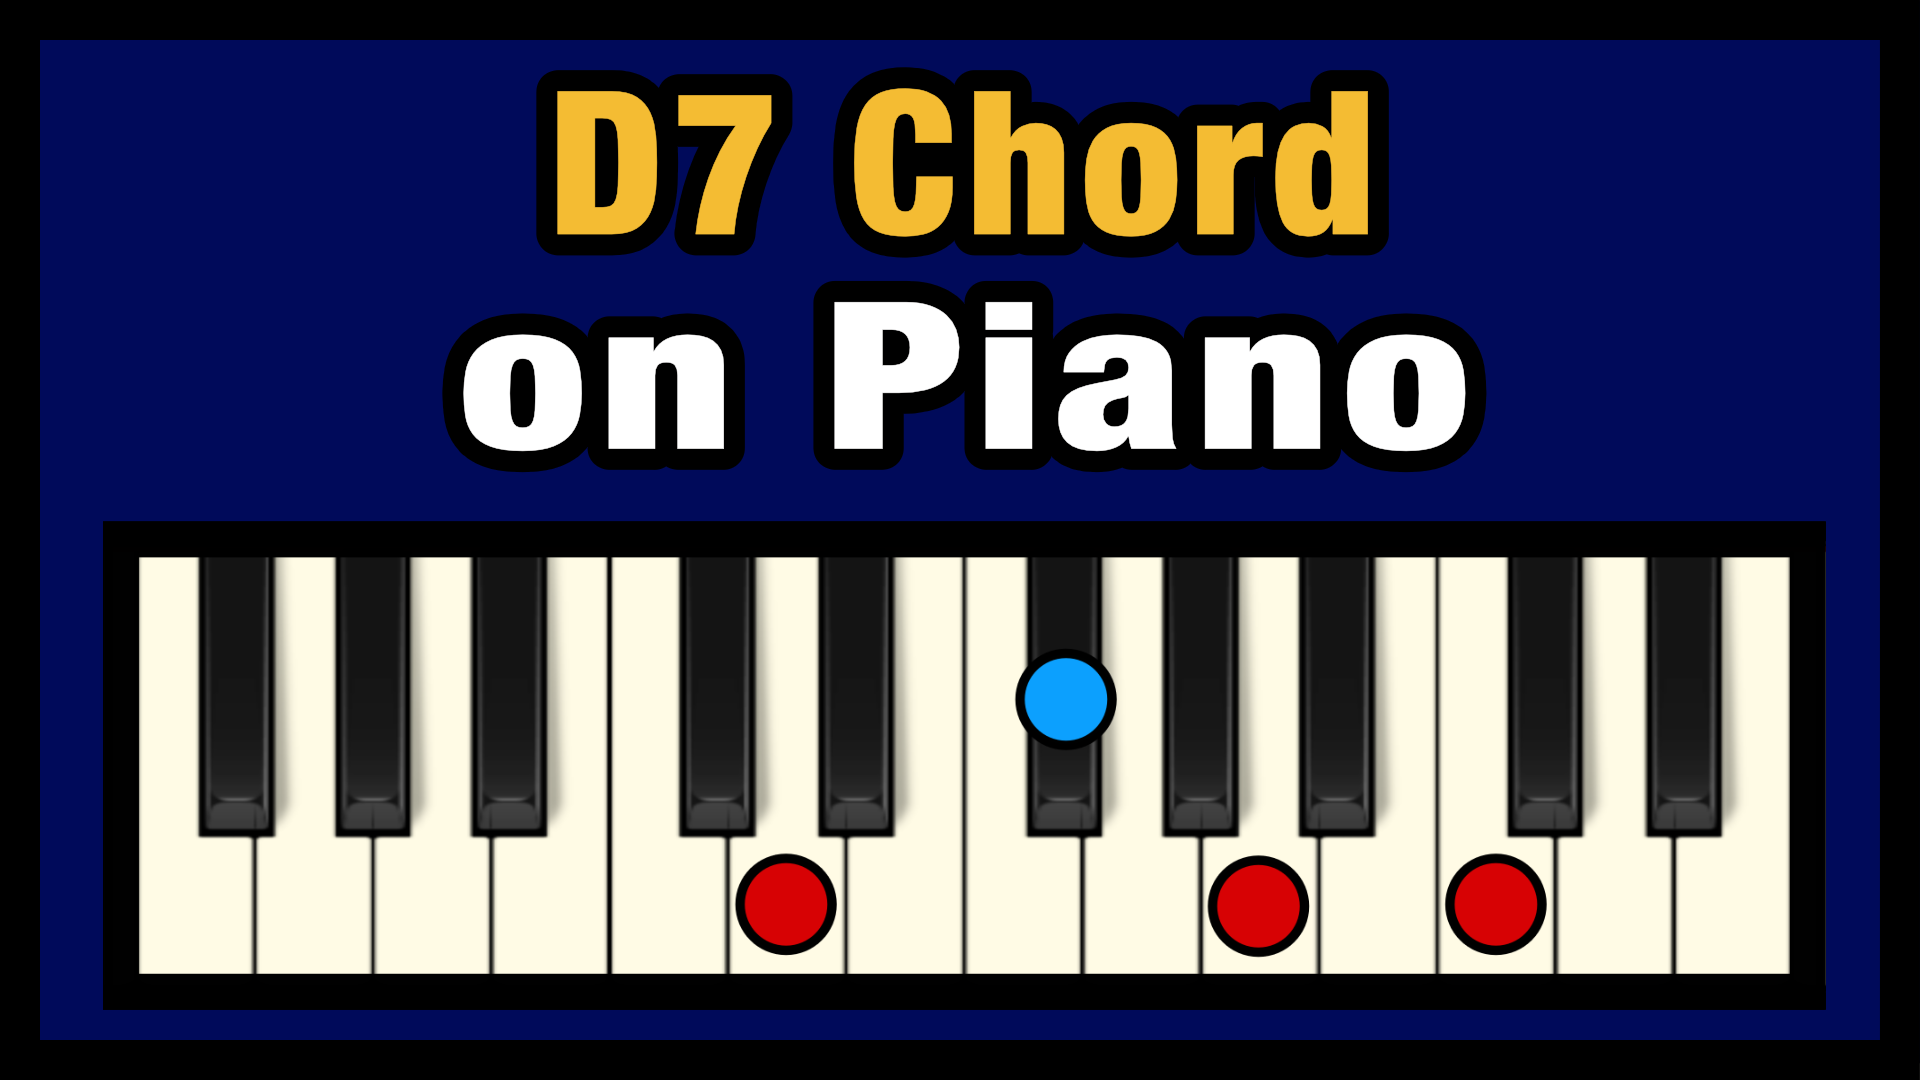 D15 Chord on Piano Free Chart – Professional Composers